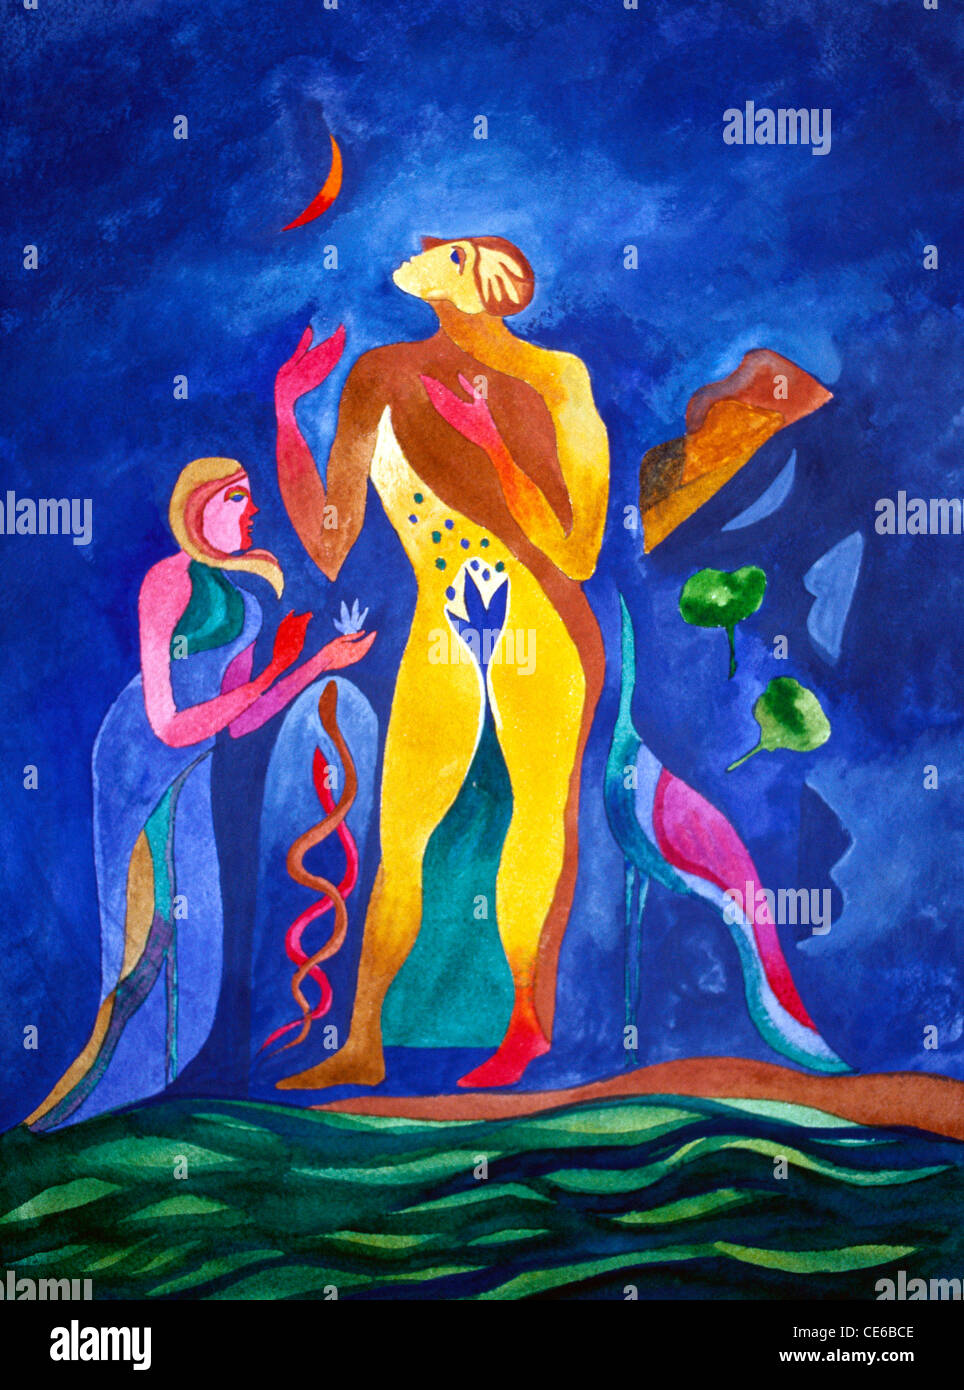 watercolor painting adam and eve with moon fig leaf snakes birds